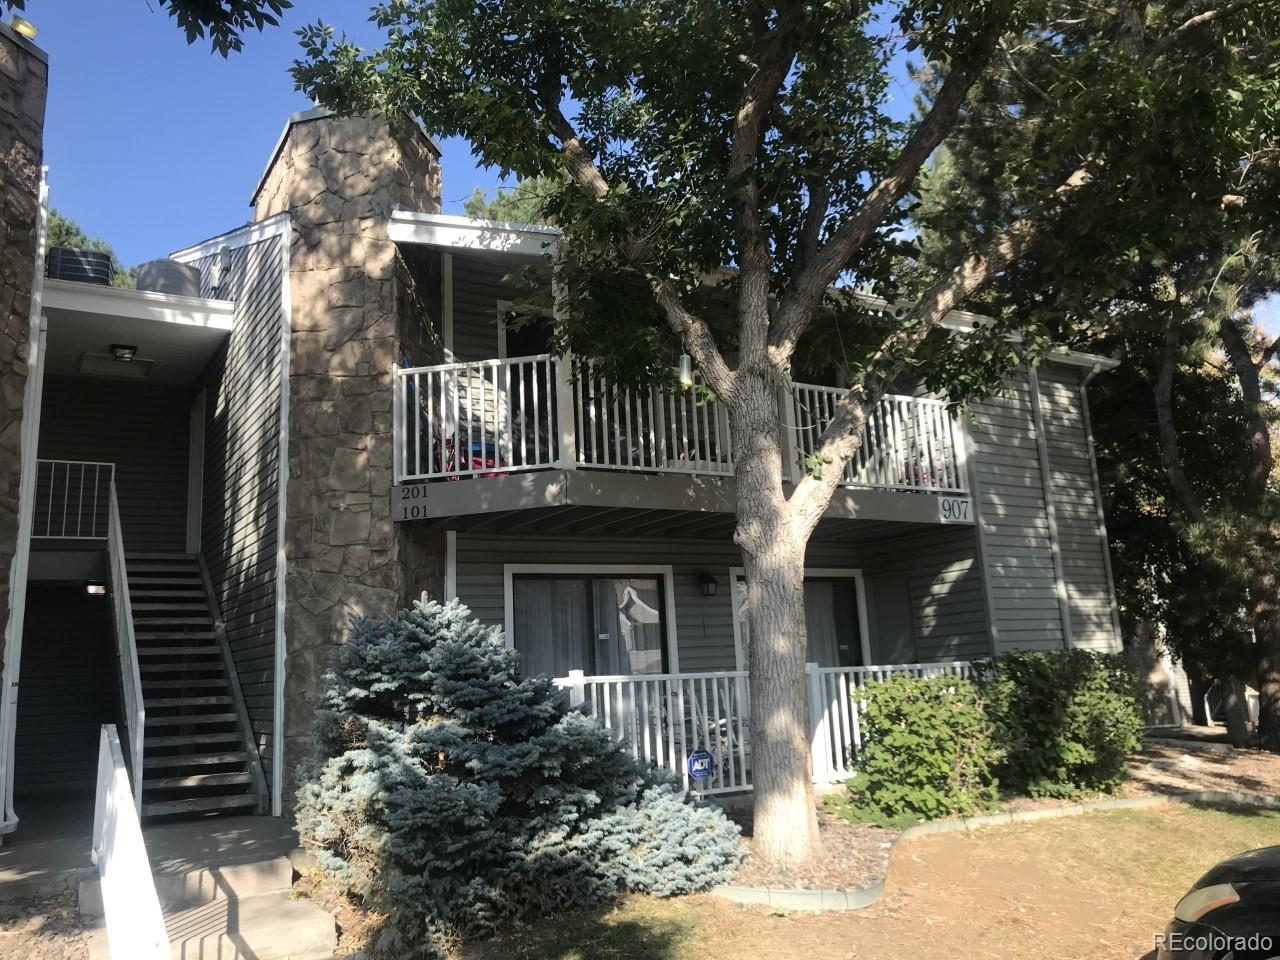 Showings to start Monday October 4th.  2 bedroom/2 full bathroom 2nd floor condo in 2 story building. Vaulted ceiling, access to covered deck from living room + bedroom 2. Washer/dyer and all appliances included. Currently rented thru December 2021 to Section 8 tenant who would stay if buyer desires. Call for details. 1 reserved parking space.